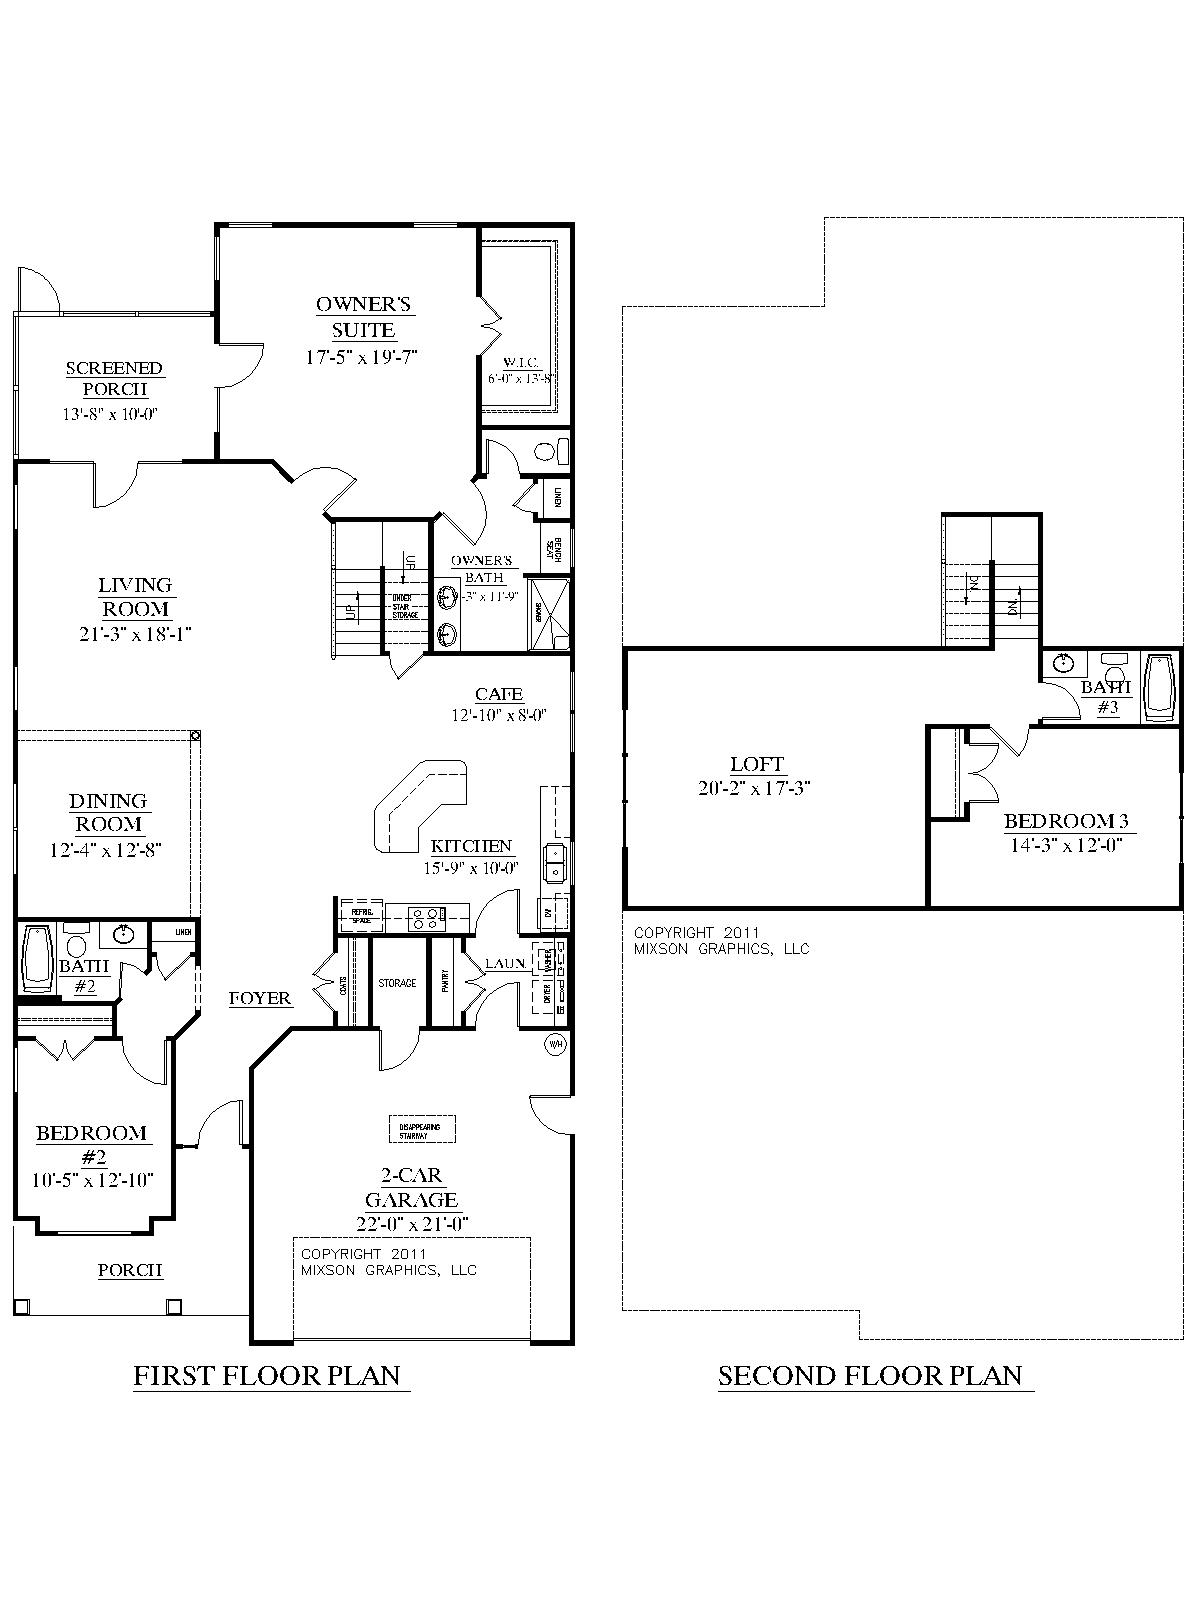 2 story house plans with bedrooms upstairs modern 2 story for Upstairs floor plans